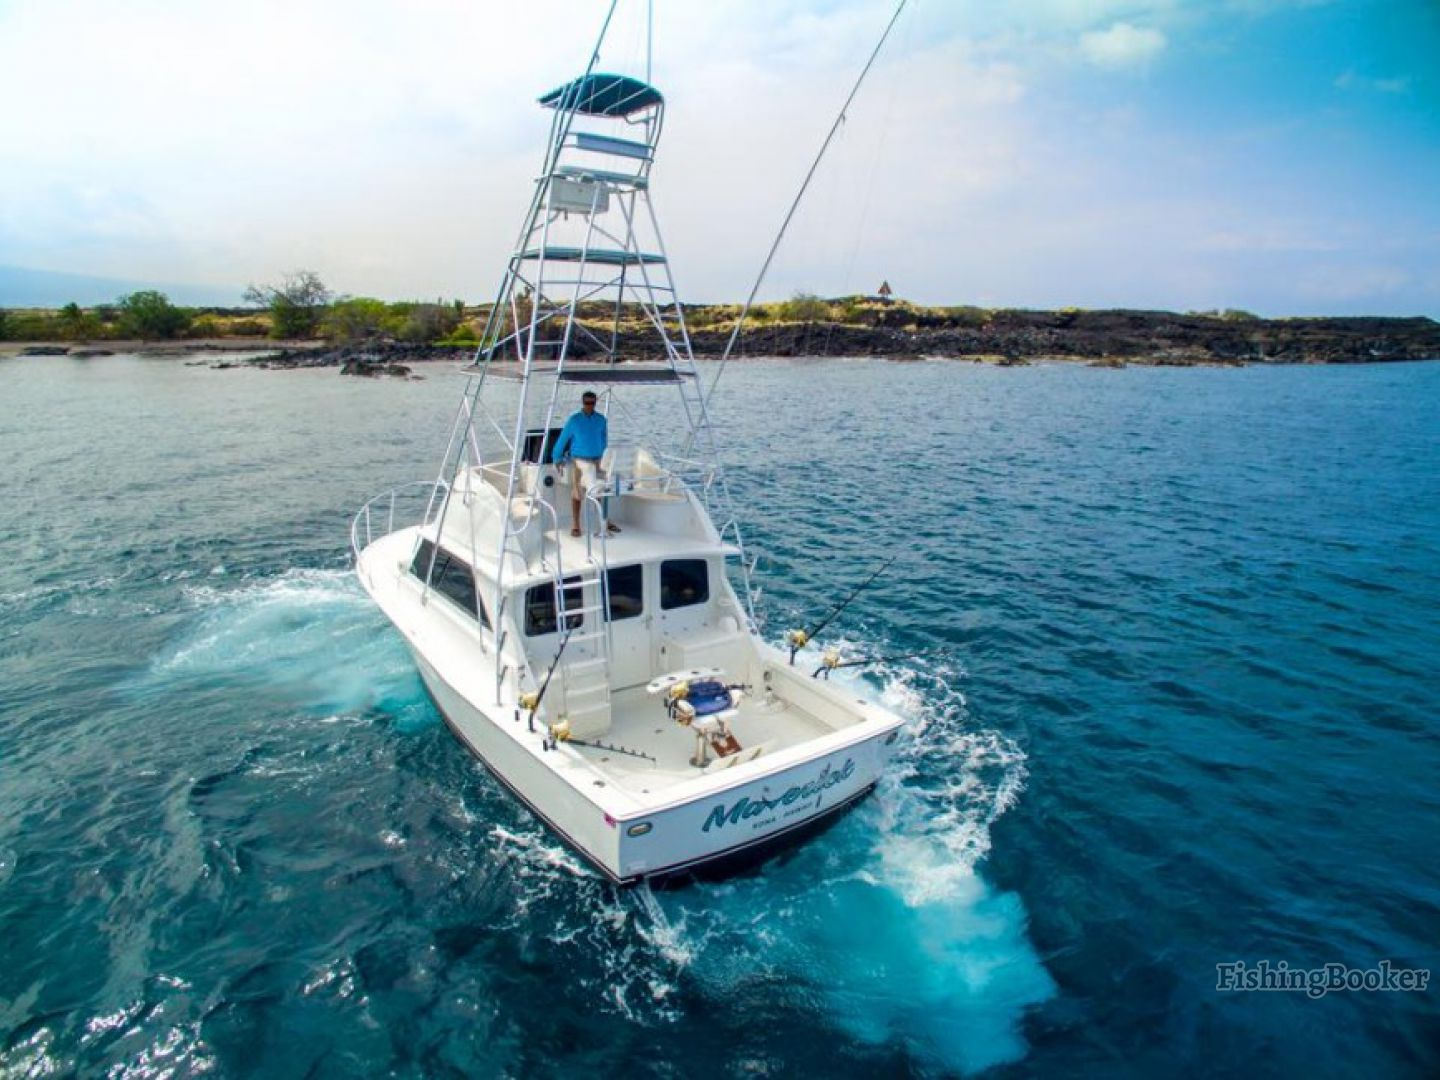 Maverick sportfishing kailua kona hawaii for Kona fishing charters